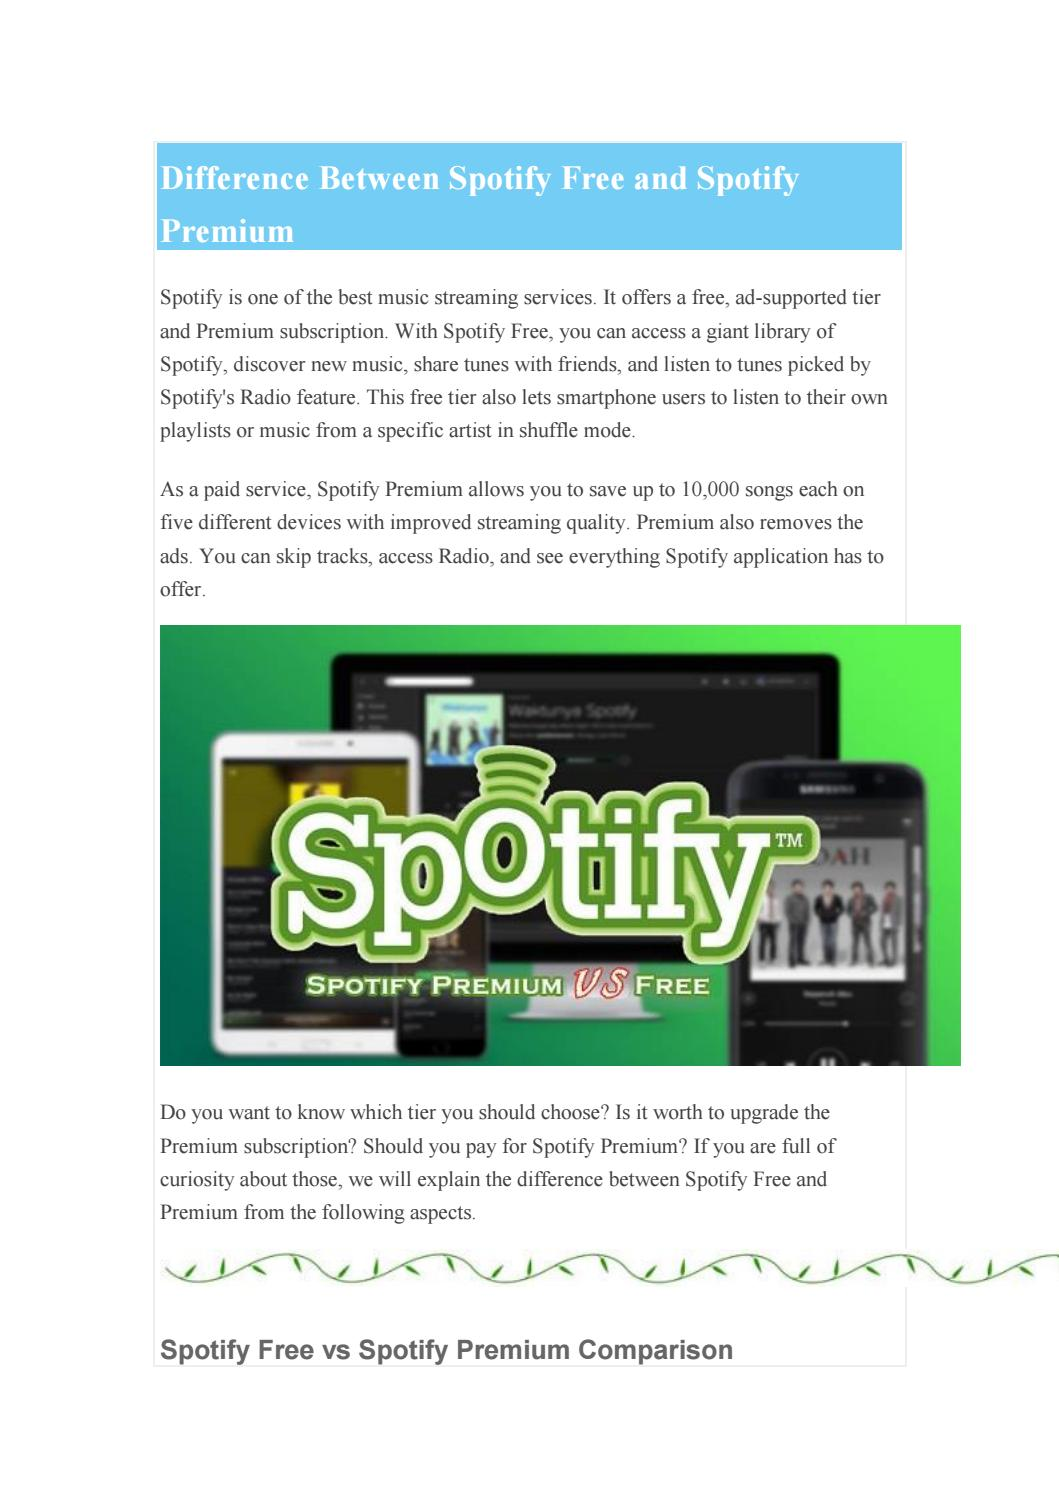 What is the difference between Spotify Free and Spotify